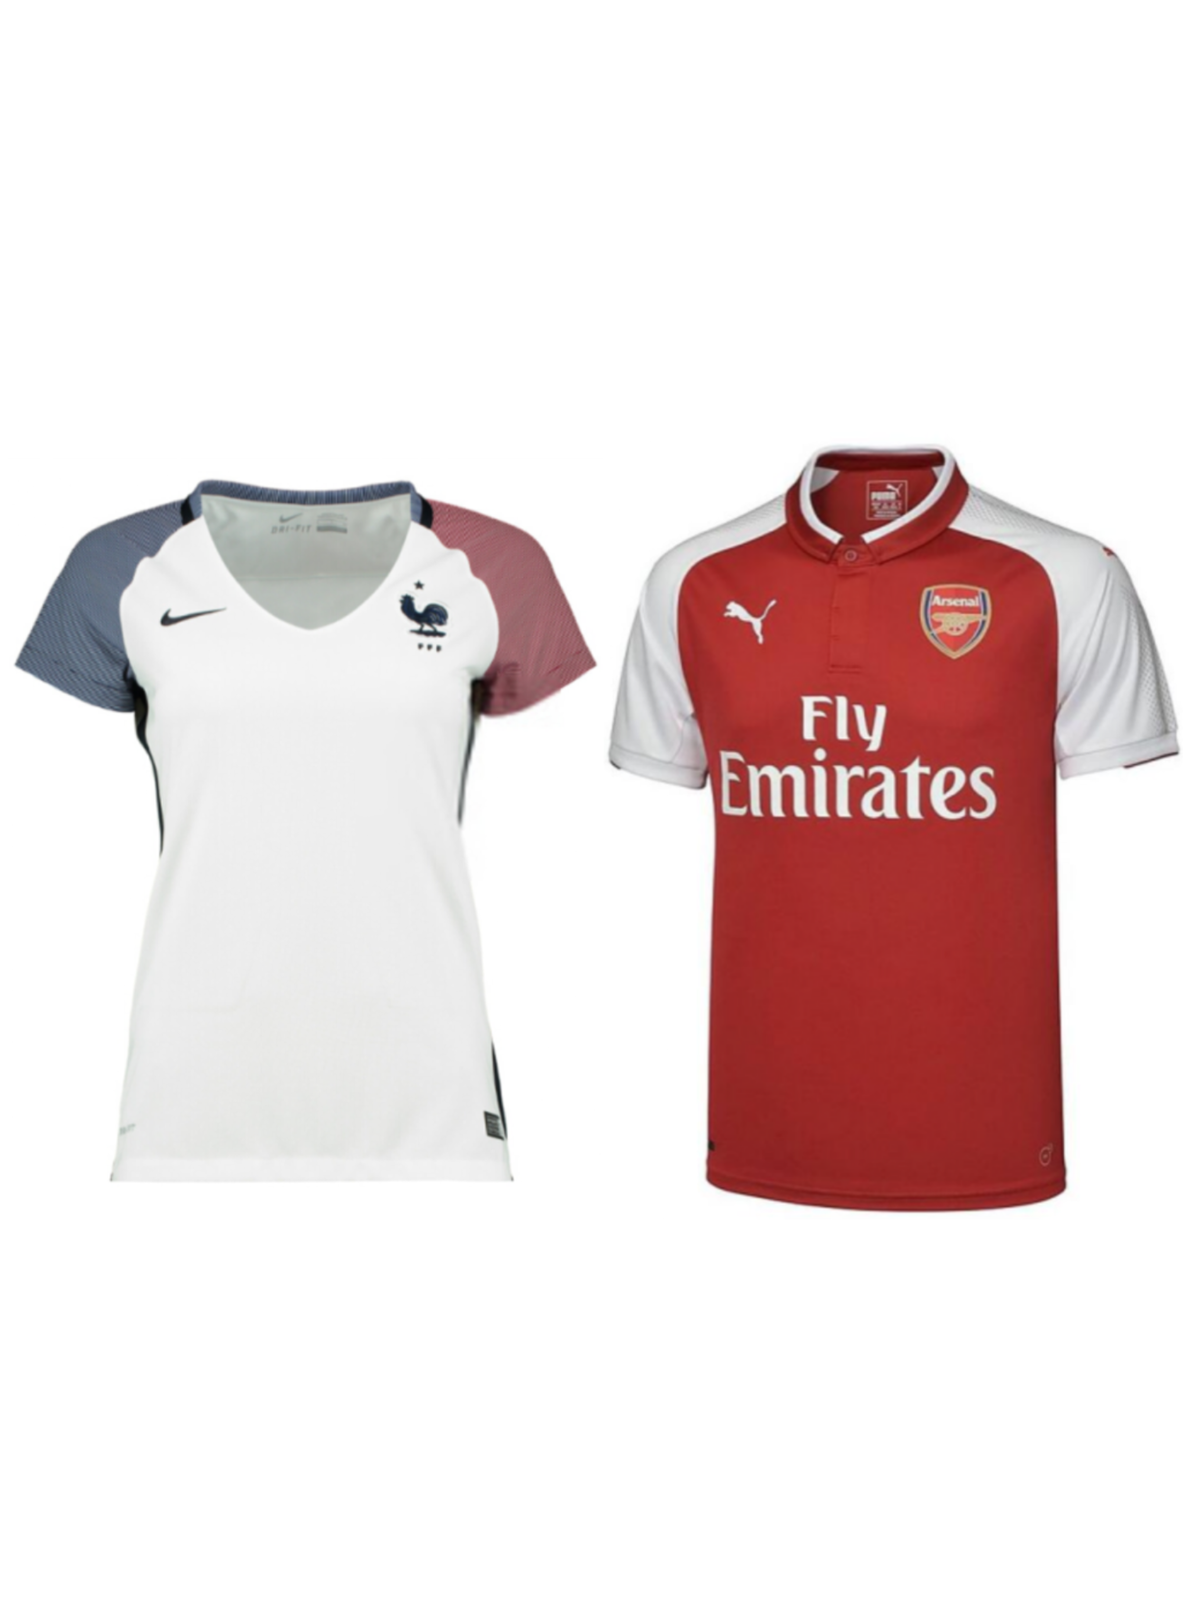 Football Kit / Soccor Jersey